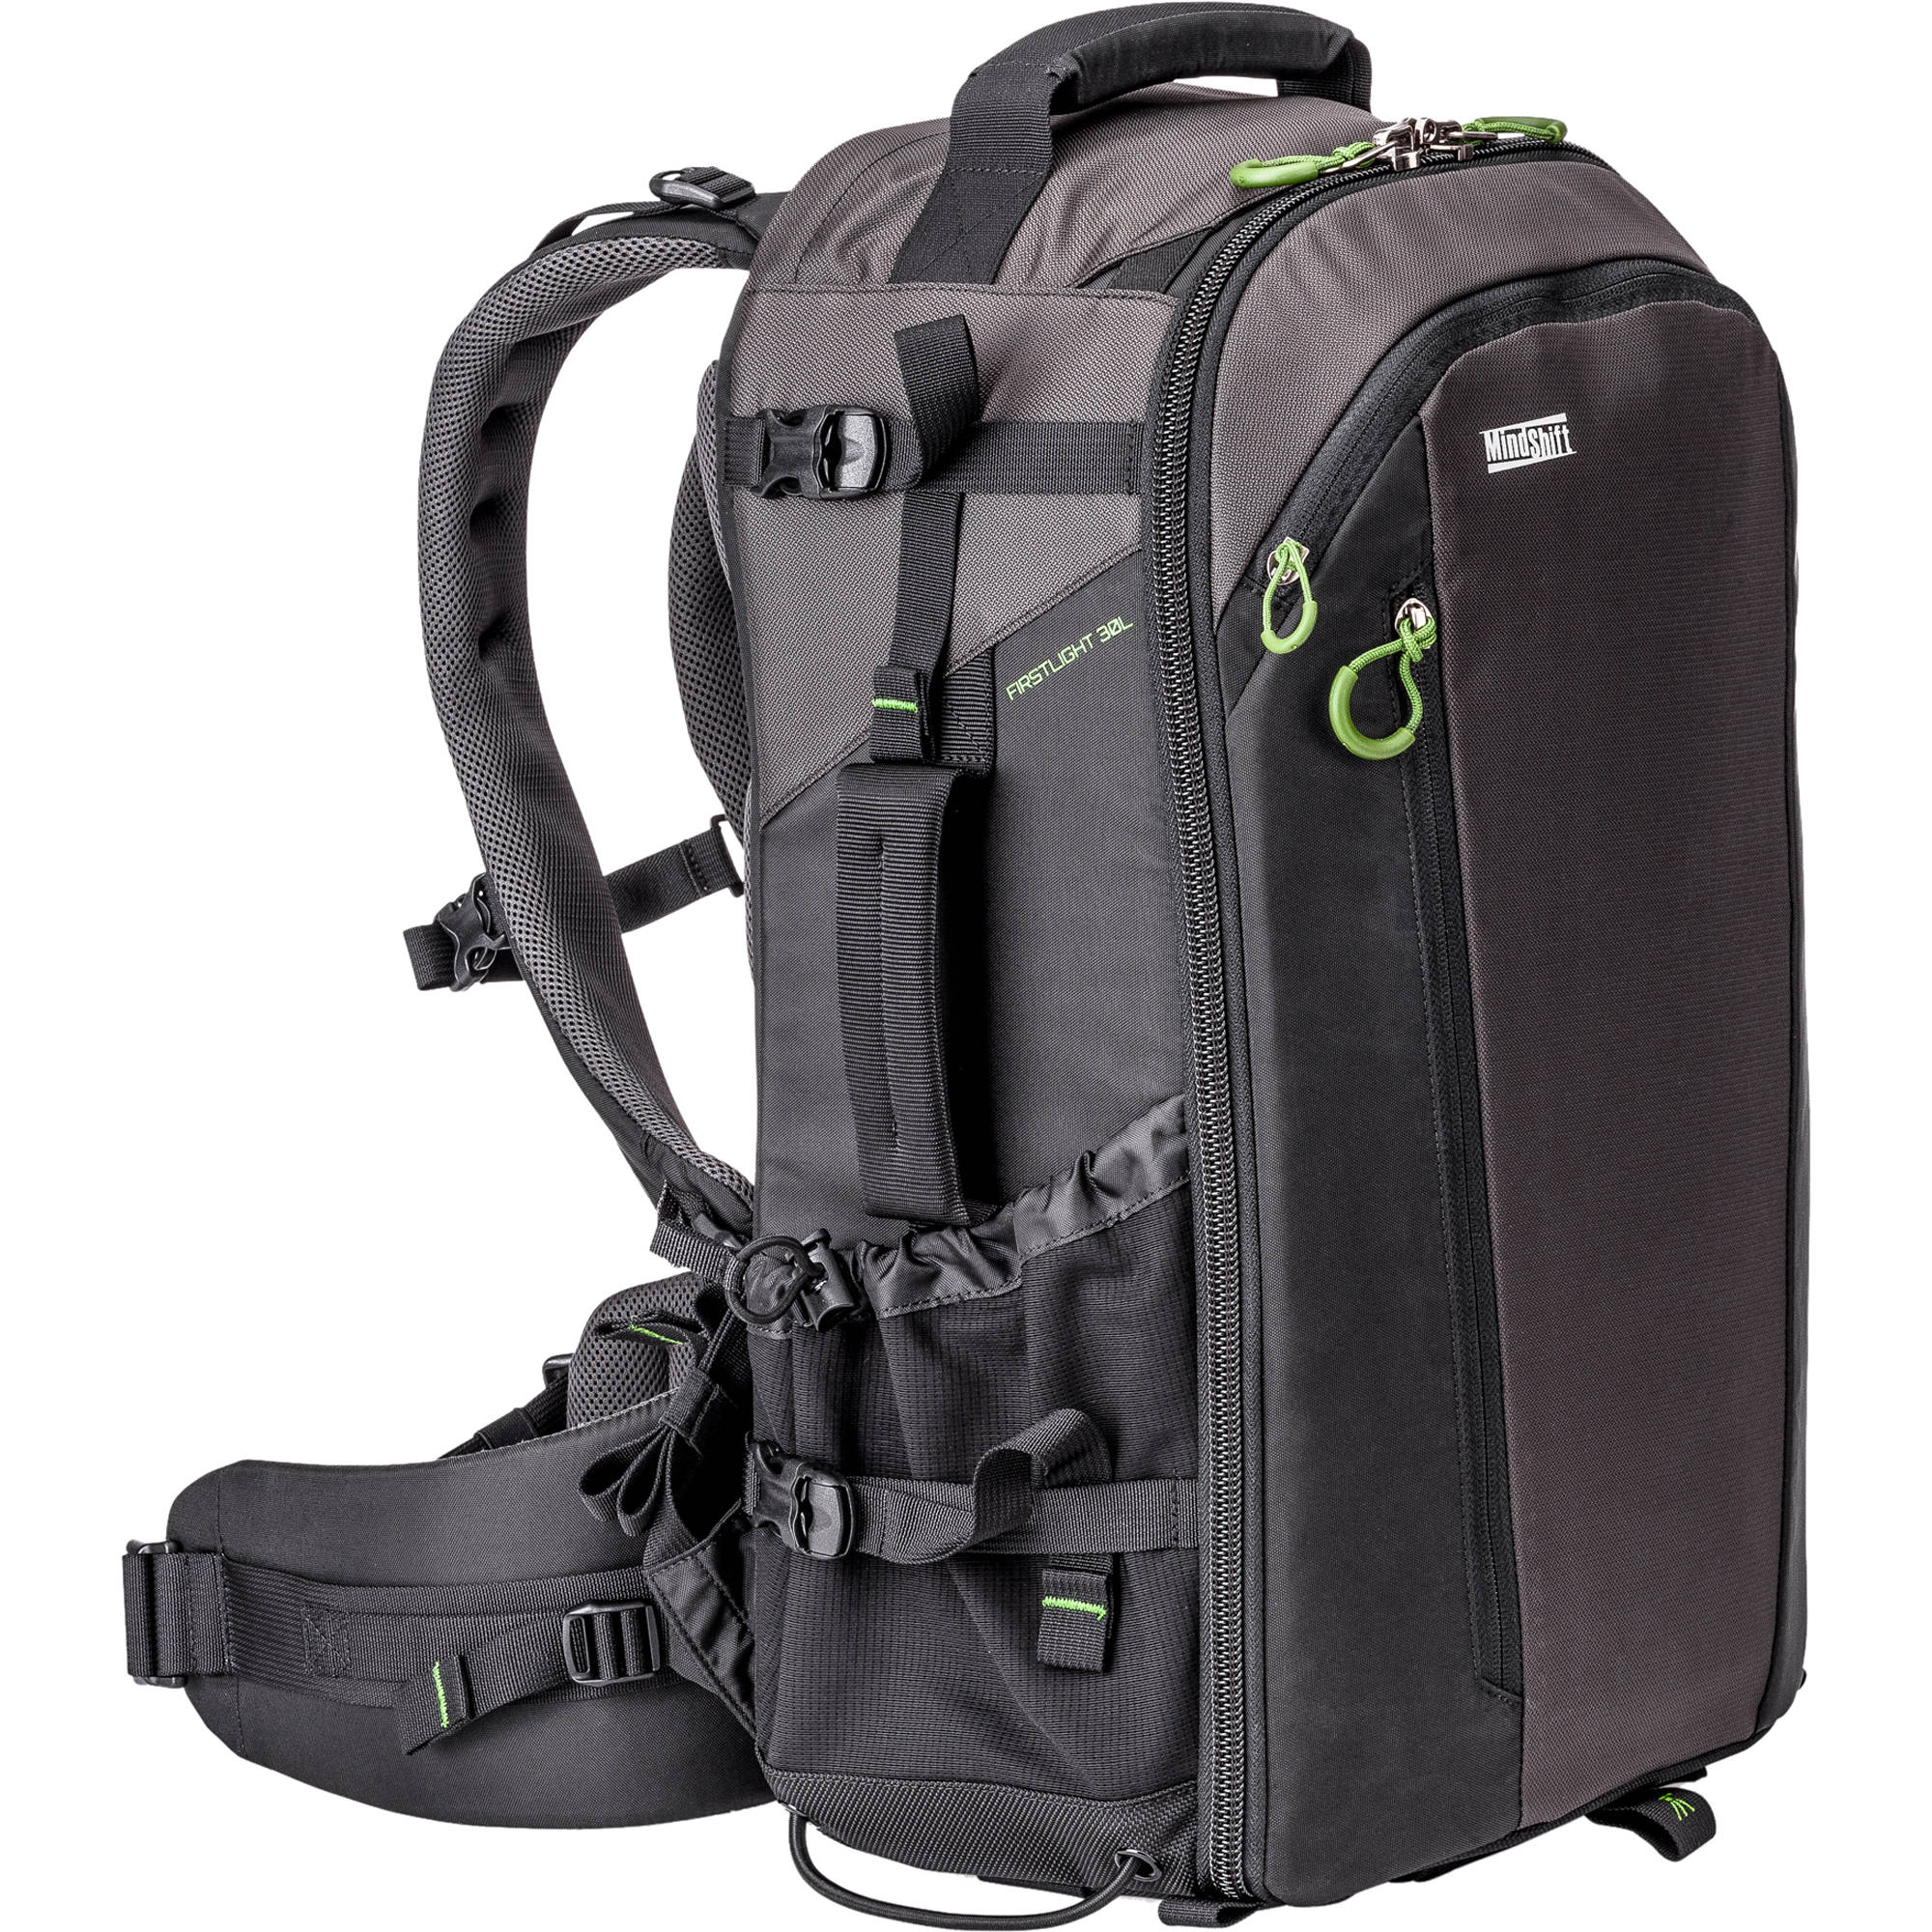 MindShift Gear FirstLight 30L DSLR & Laptop Backpack 352 B&H